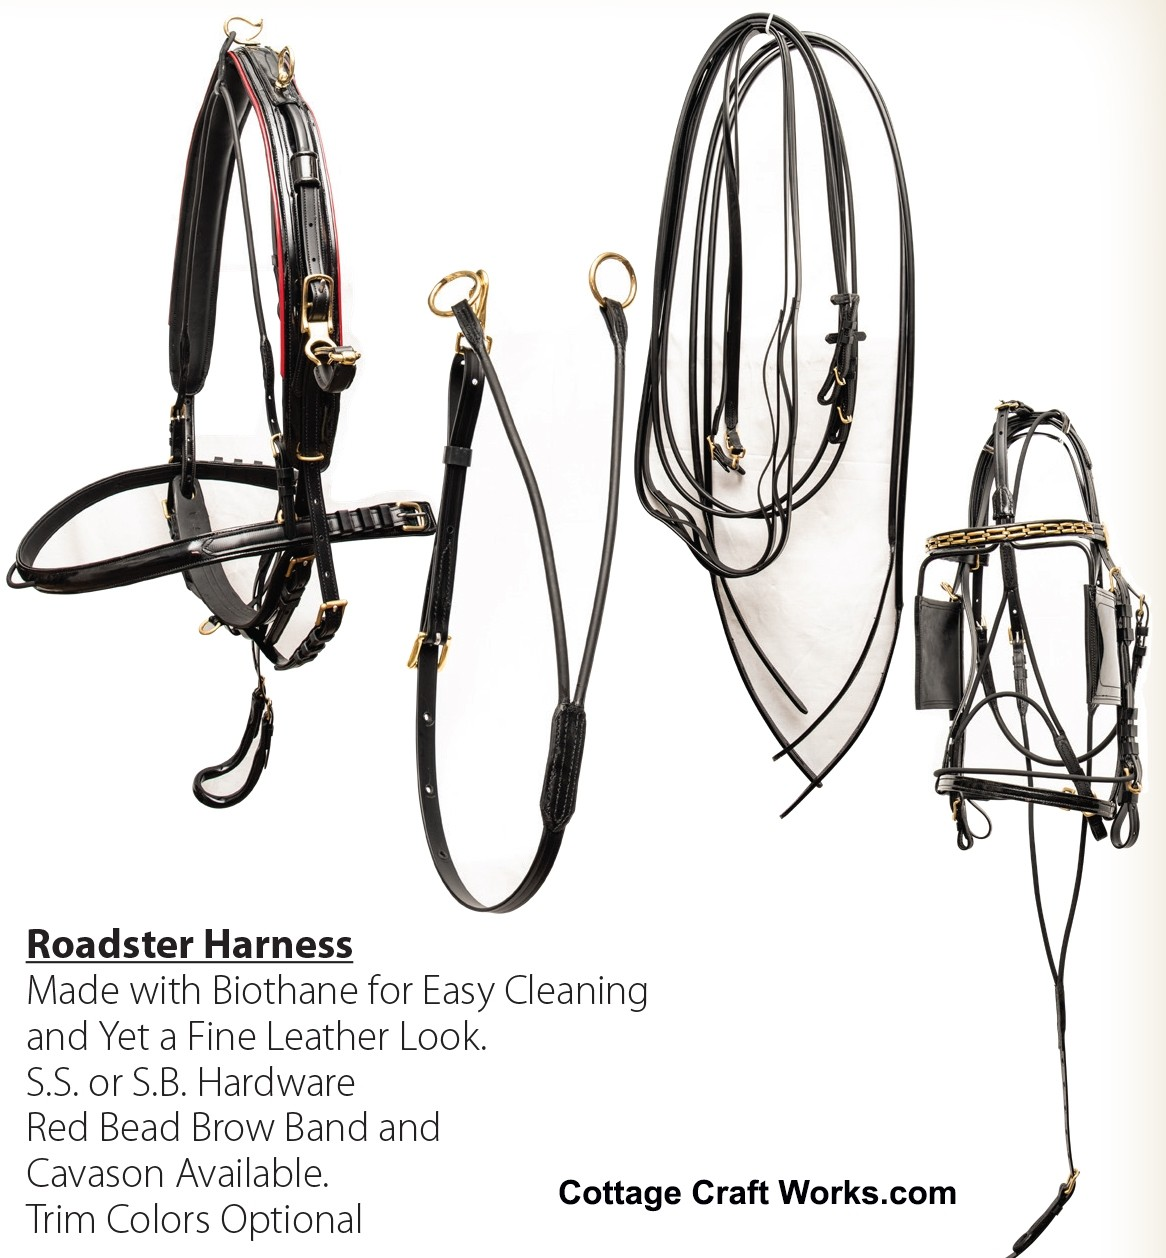 USA BioThane Supreme Roadster Competition Horse Harness